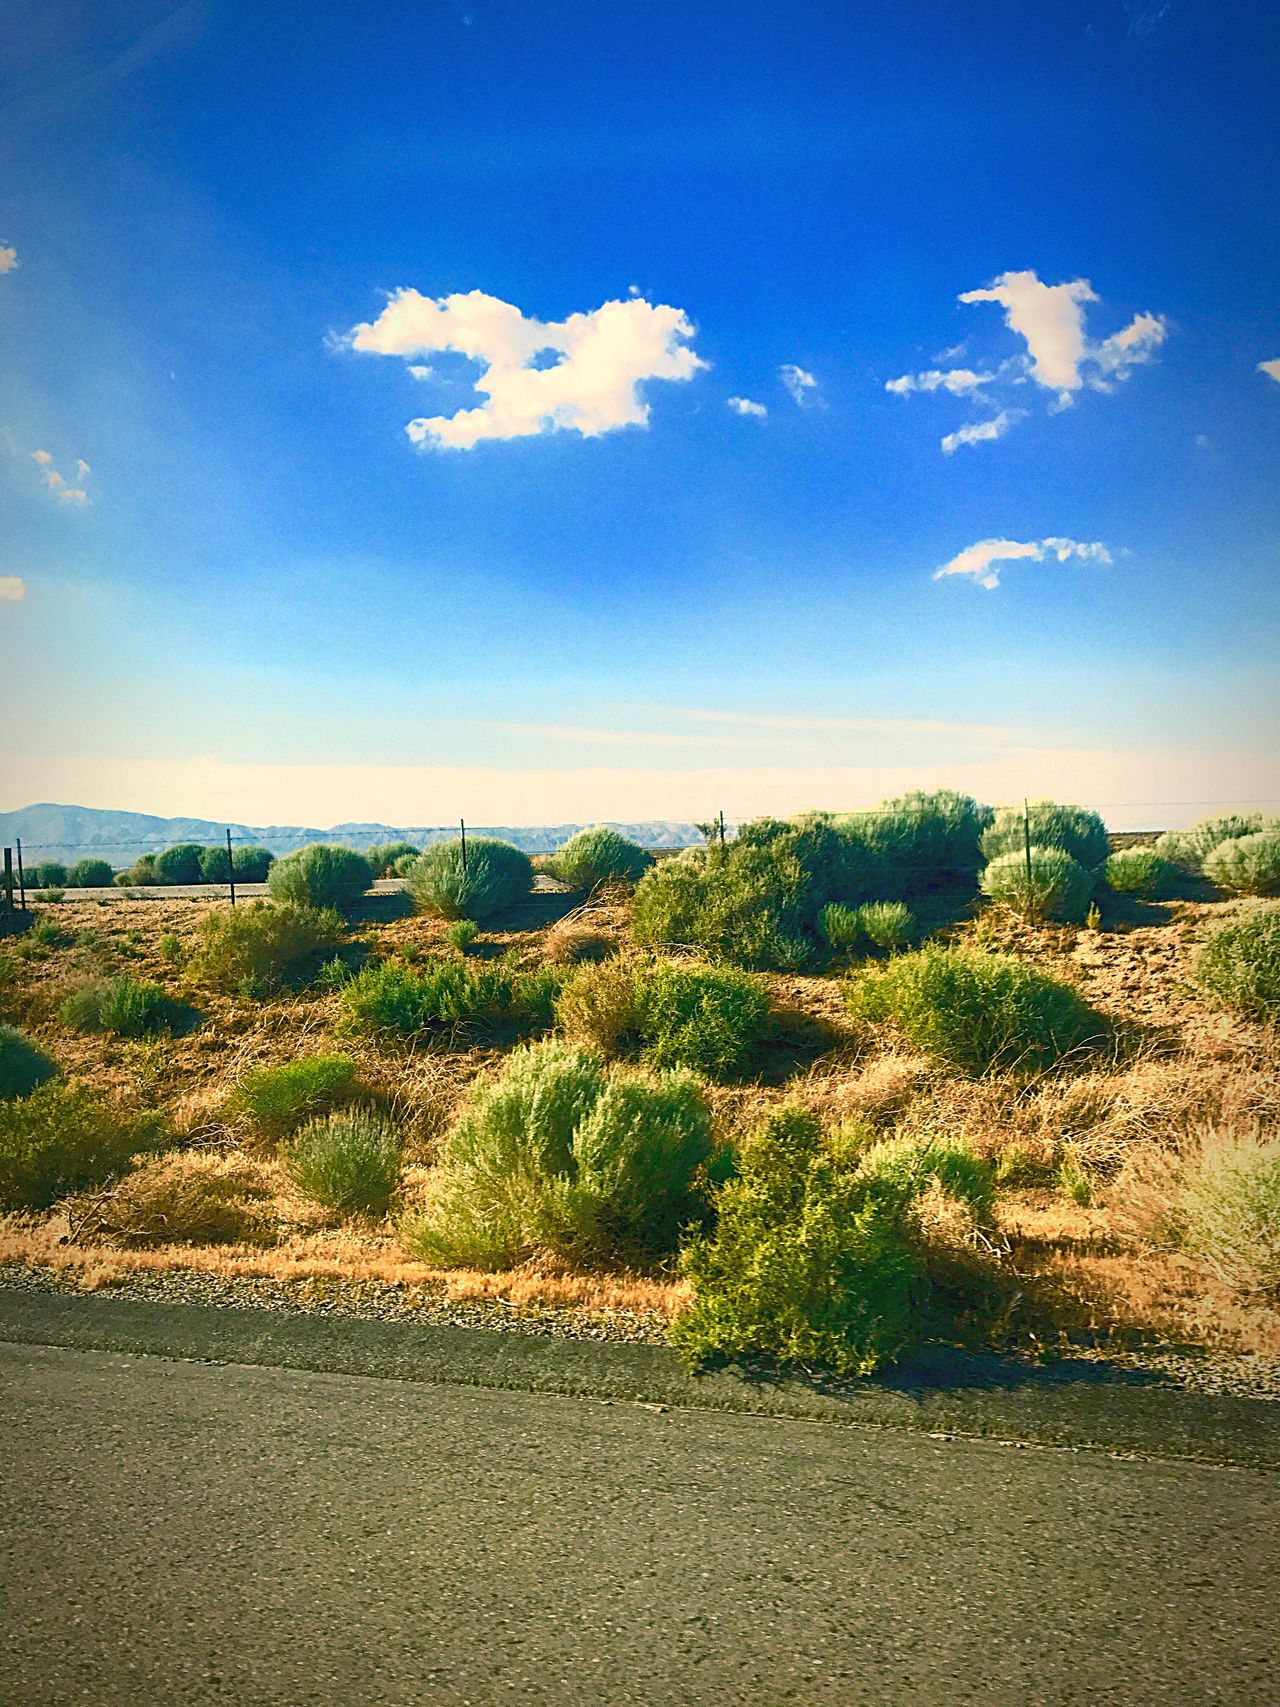 Sky Tranquility Nature Beauty In Nature Cloud - Sky Tranquil Scene Scenics No People Day Landscape Growth Tree Field Outdoors Blue Grass Road Sagebrush